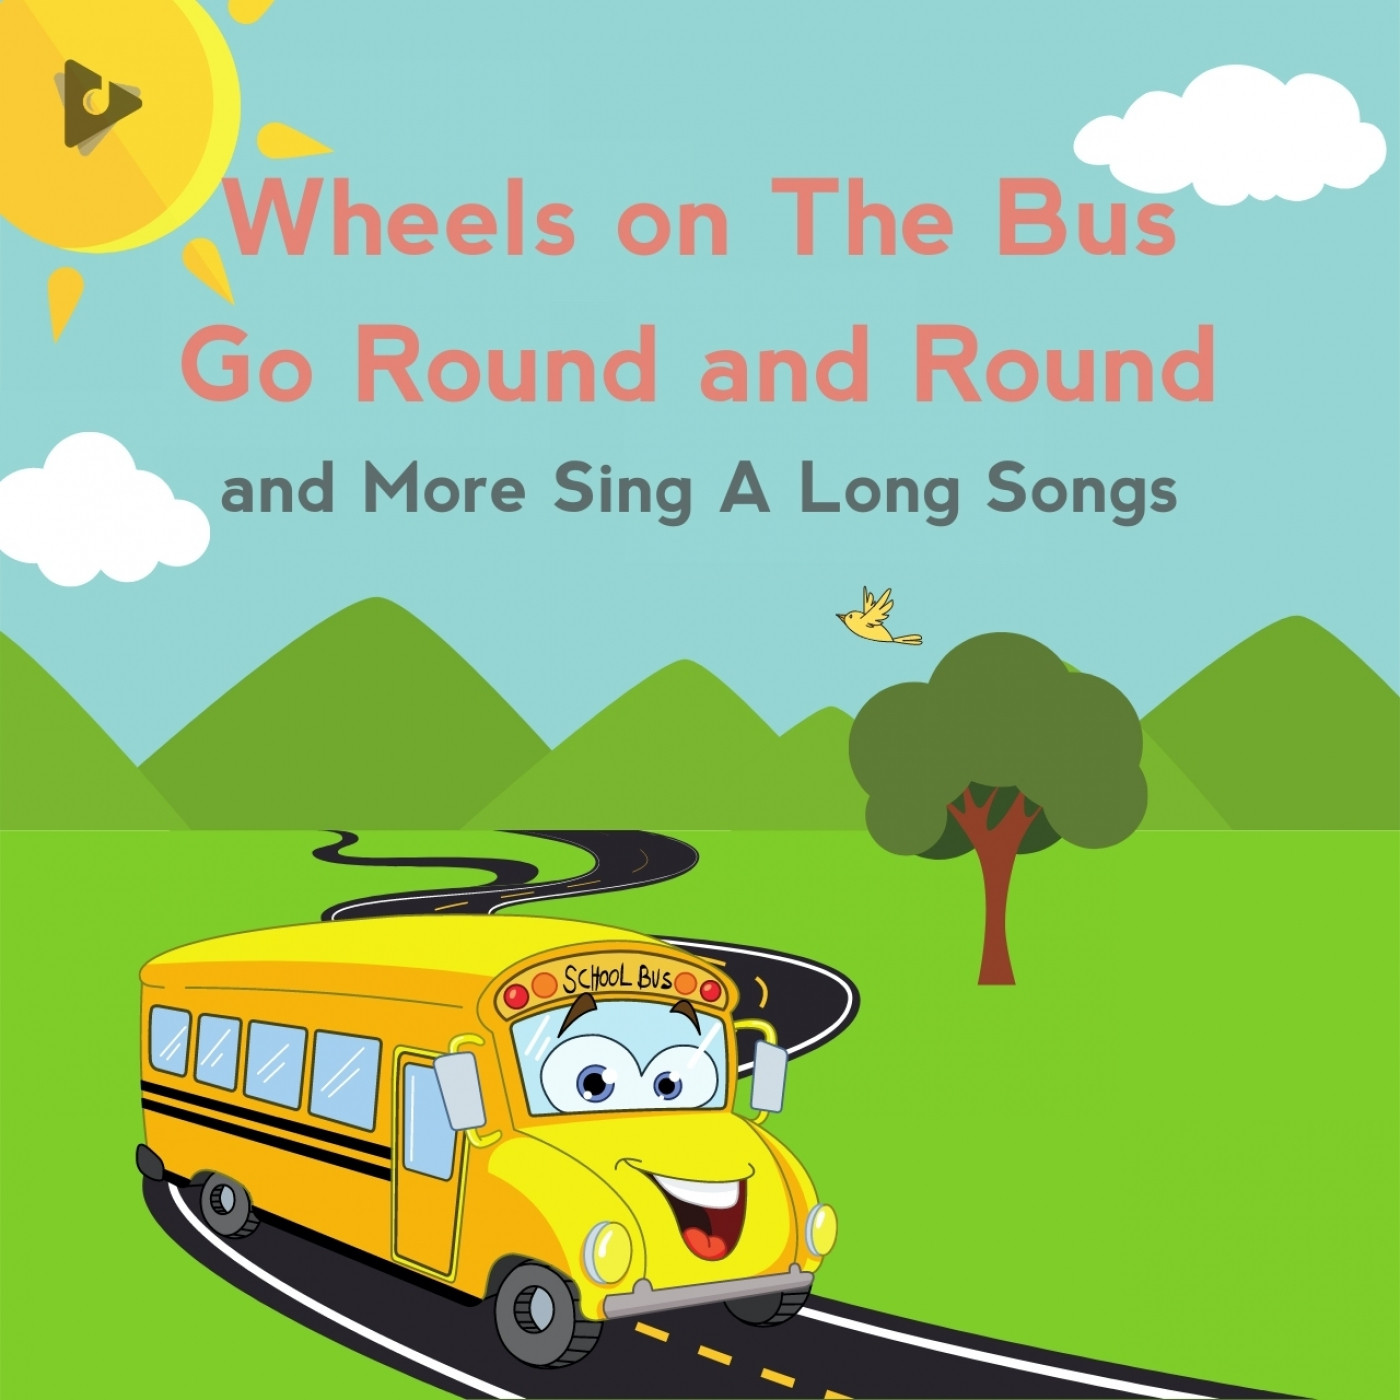 Wheels on The Bus Go Round and Round and More Sing A Long Songs